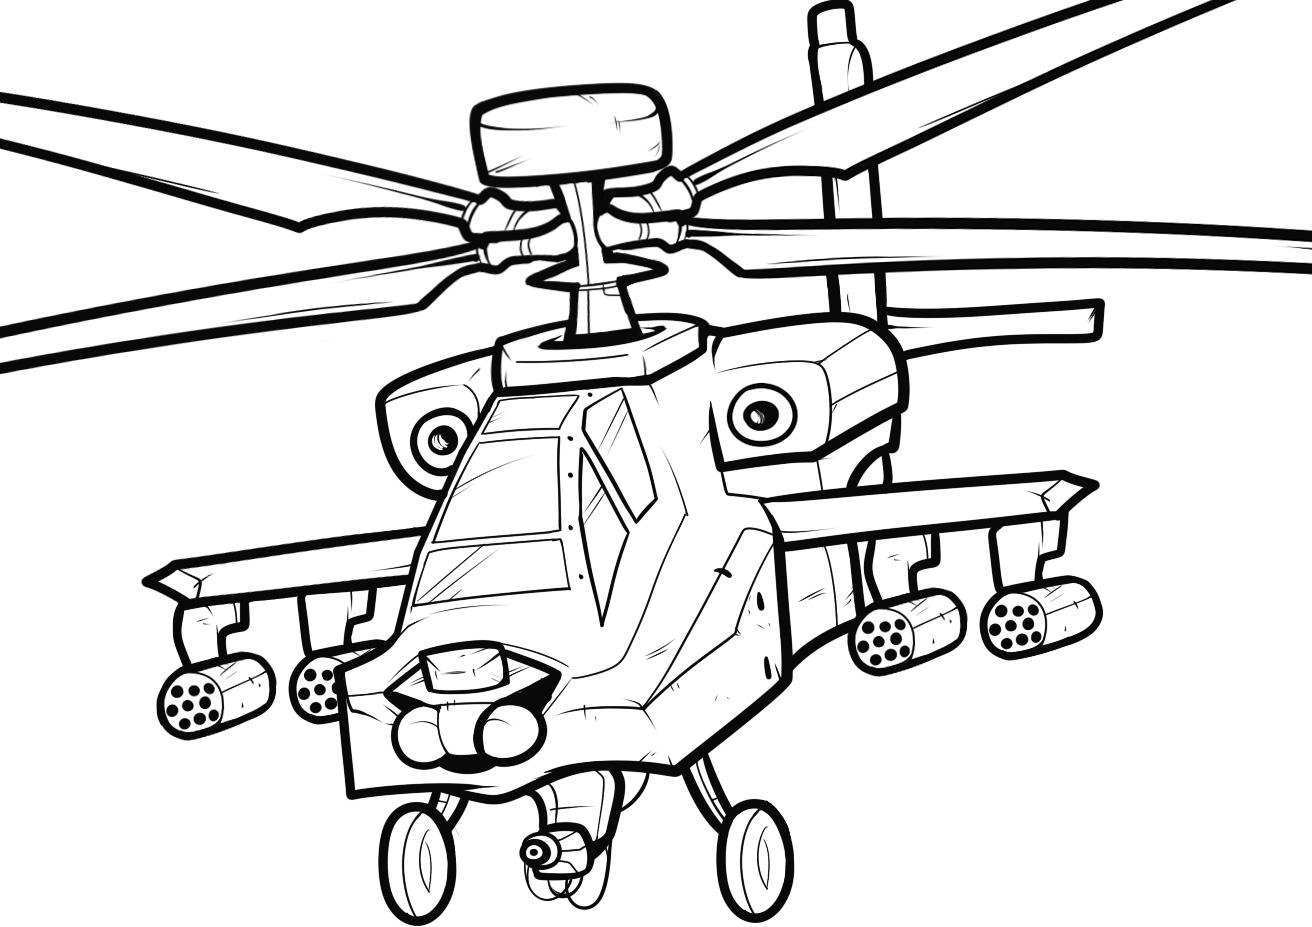 coloring pages helicopter - photo#3